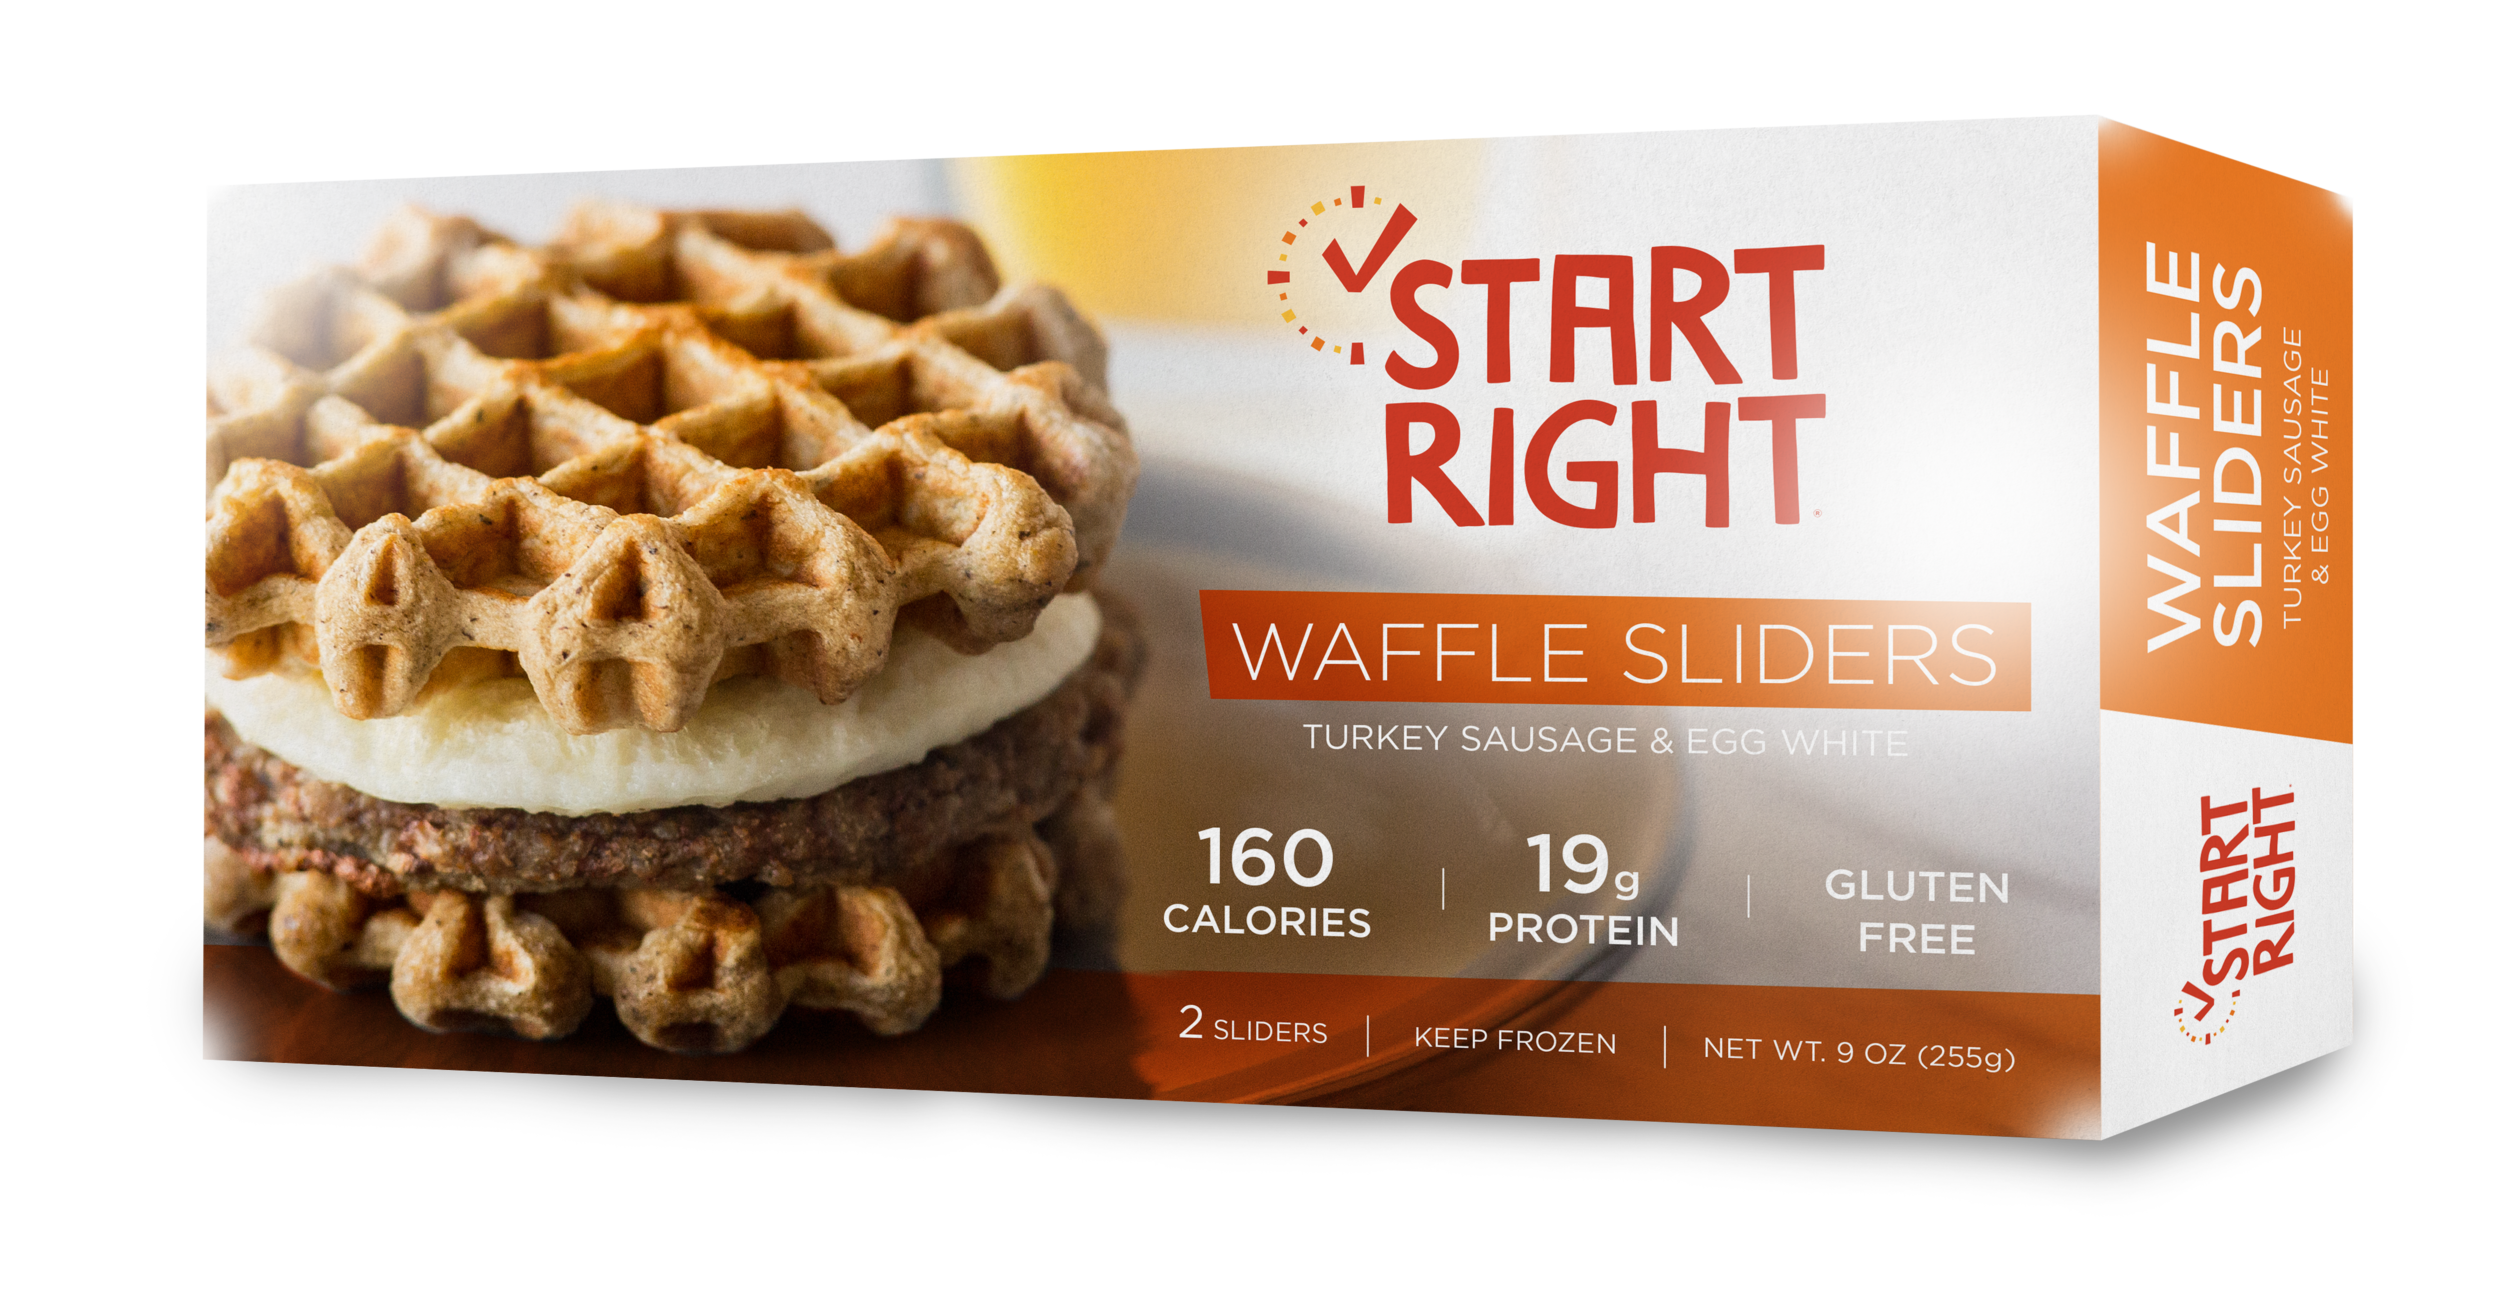 Turkey sausage, turkey sausage breakfast sandwich, waffle slider, high protein waffle slider, high protein breakfast sandwich, sausage and egg white breakfast sandwich